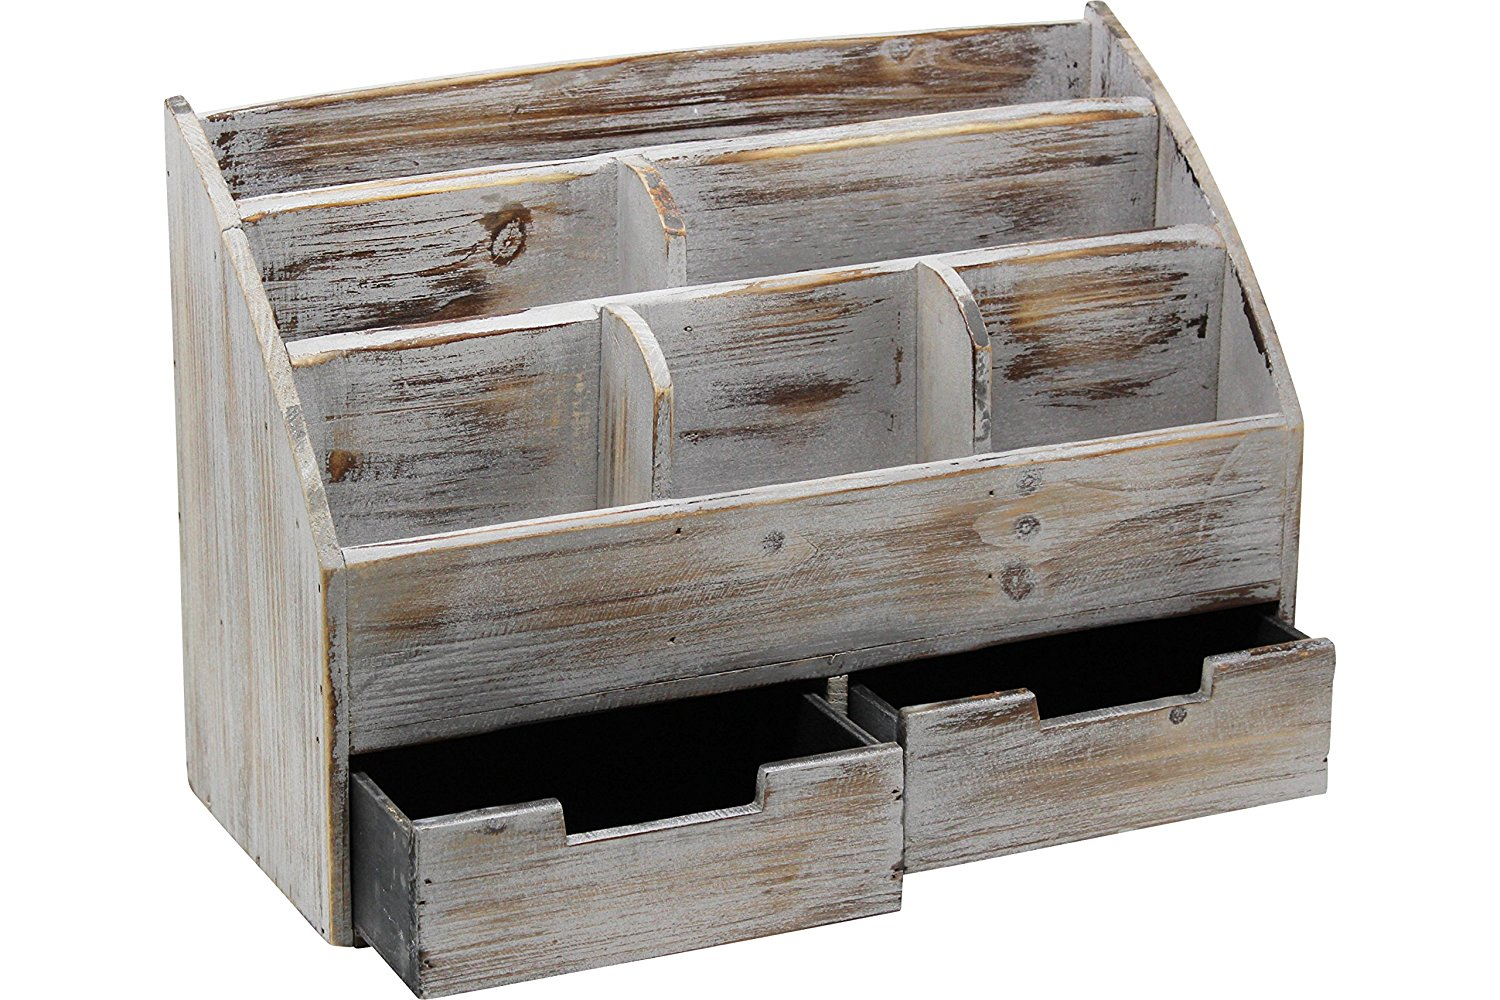 new products Vintage Rustic Wooden Office Desk Organizer mail sorter